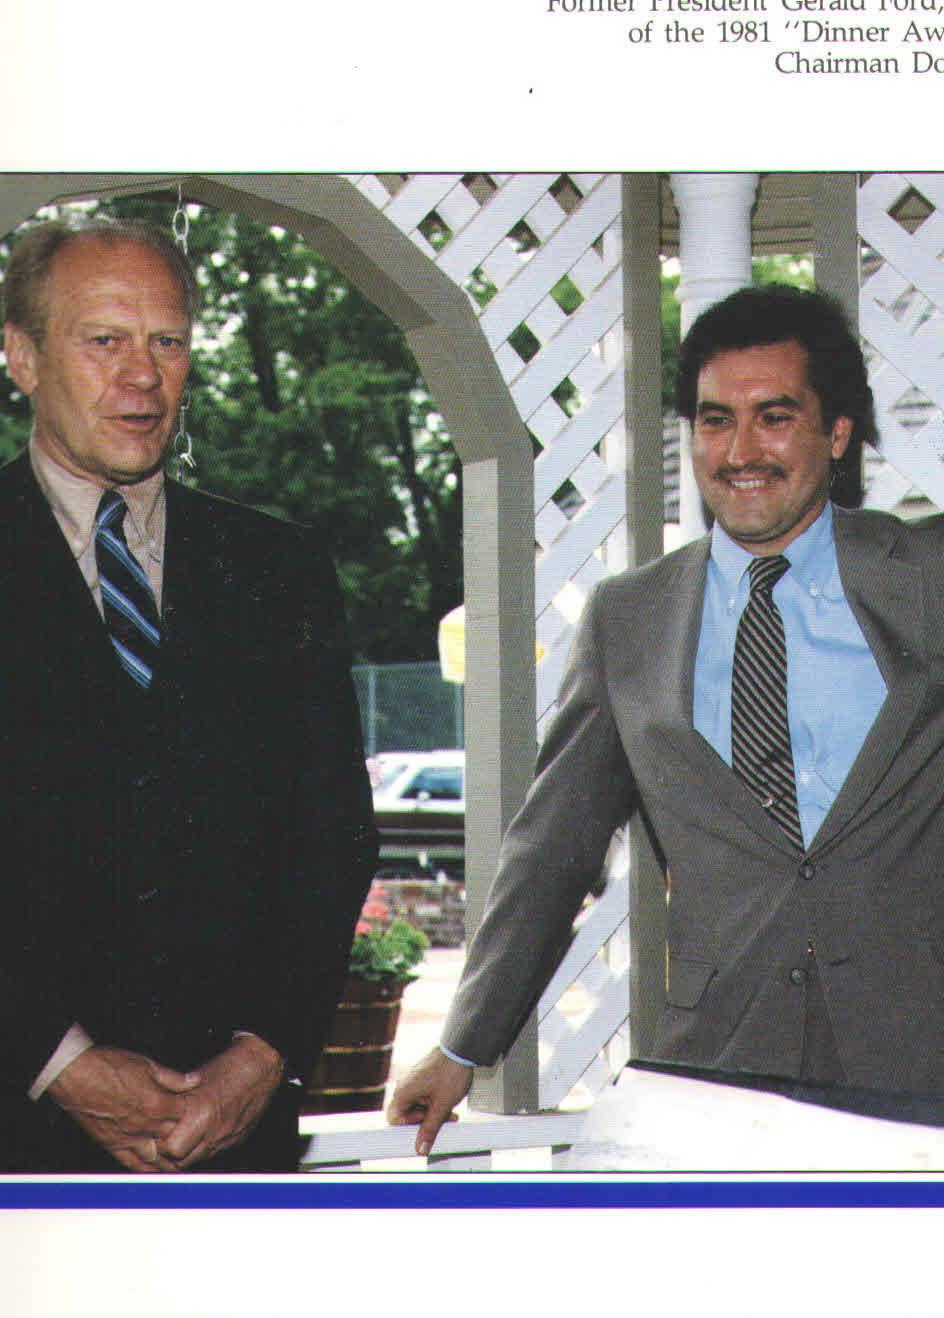 President Gerald Ford with Doug Wead at the Wead residence in Missouri. (Photo from Wead collection.)